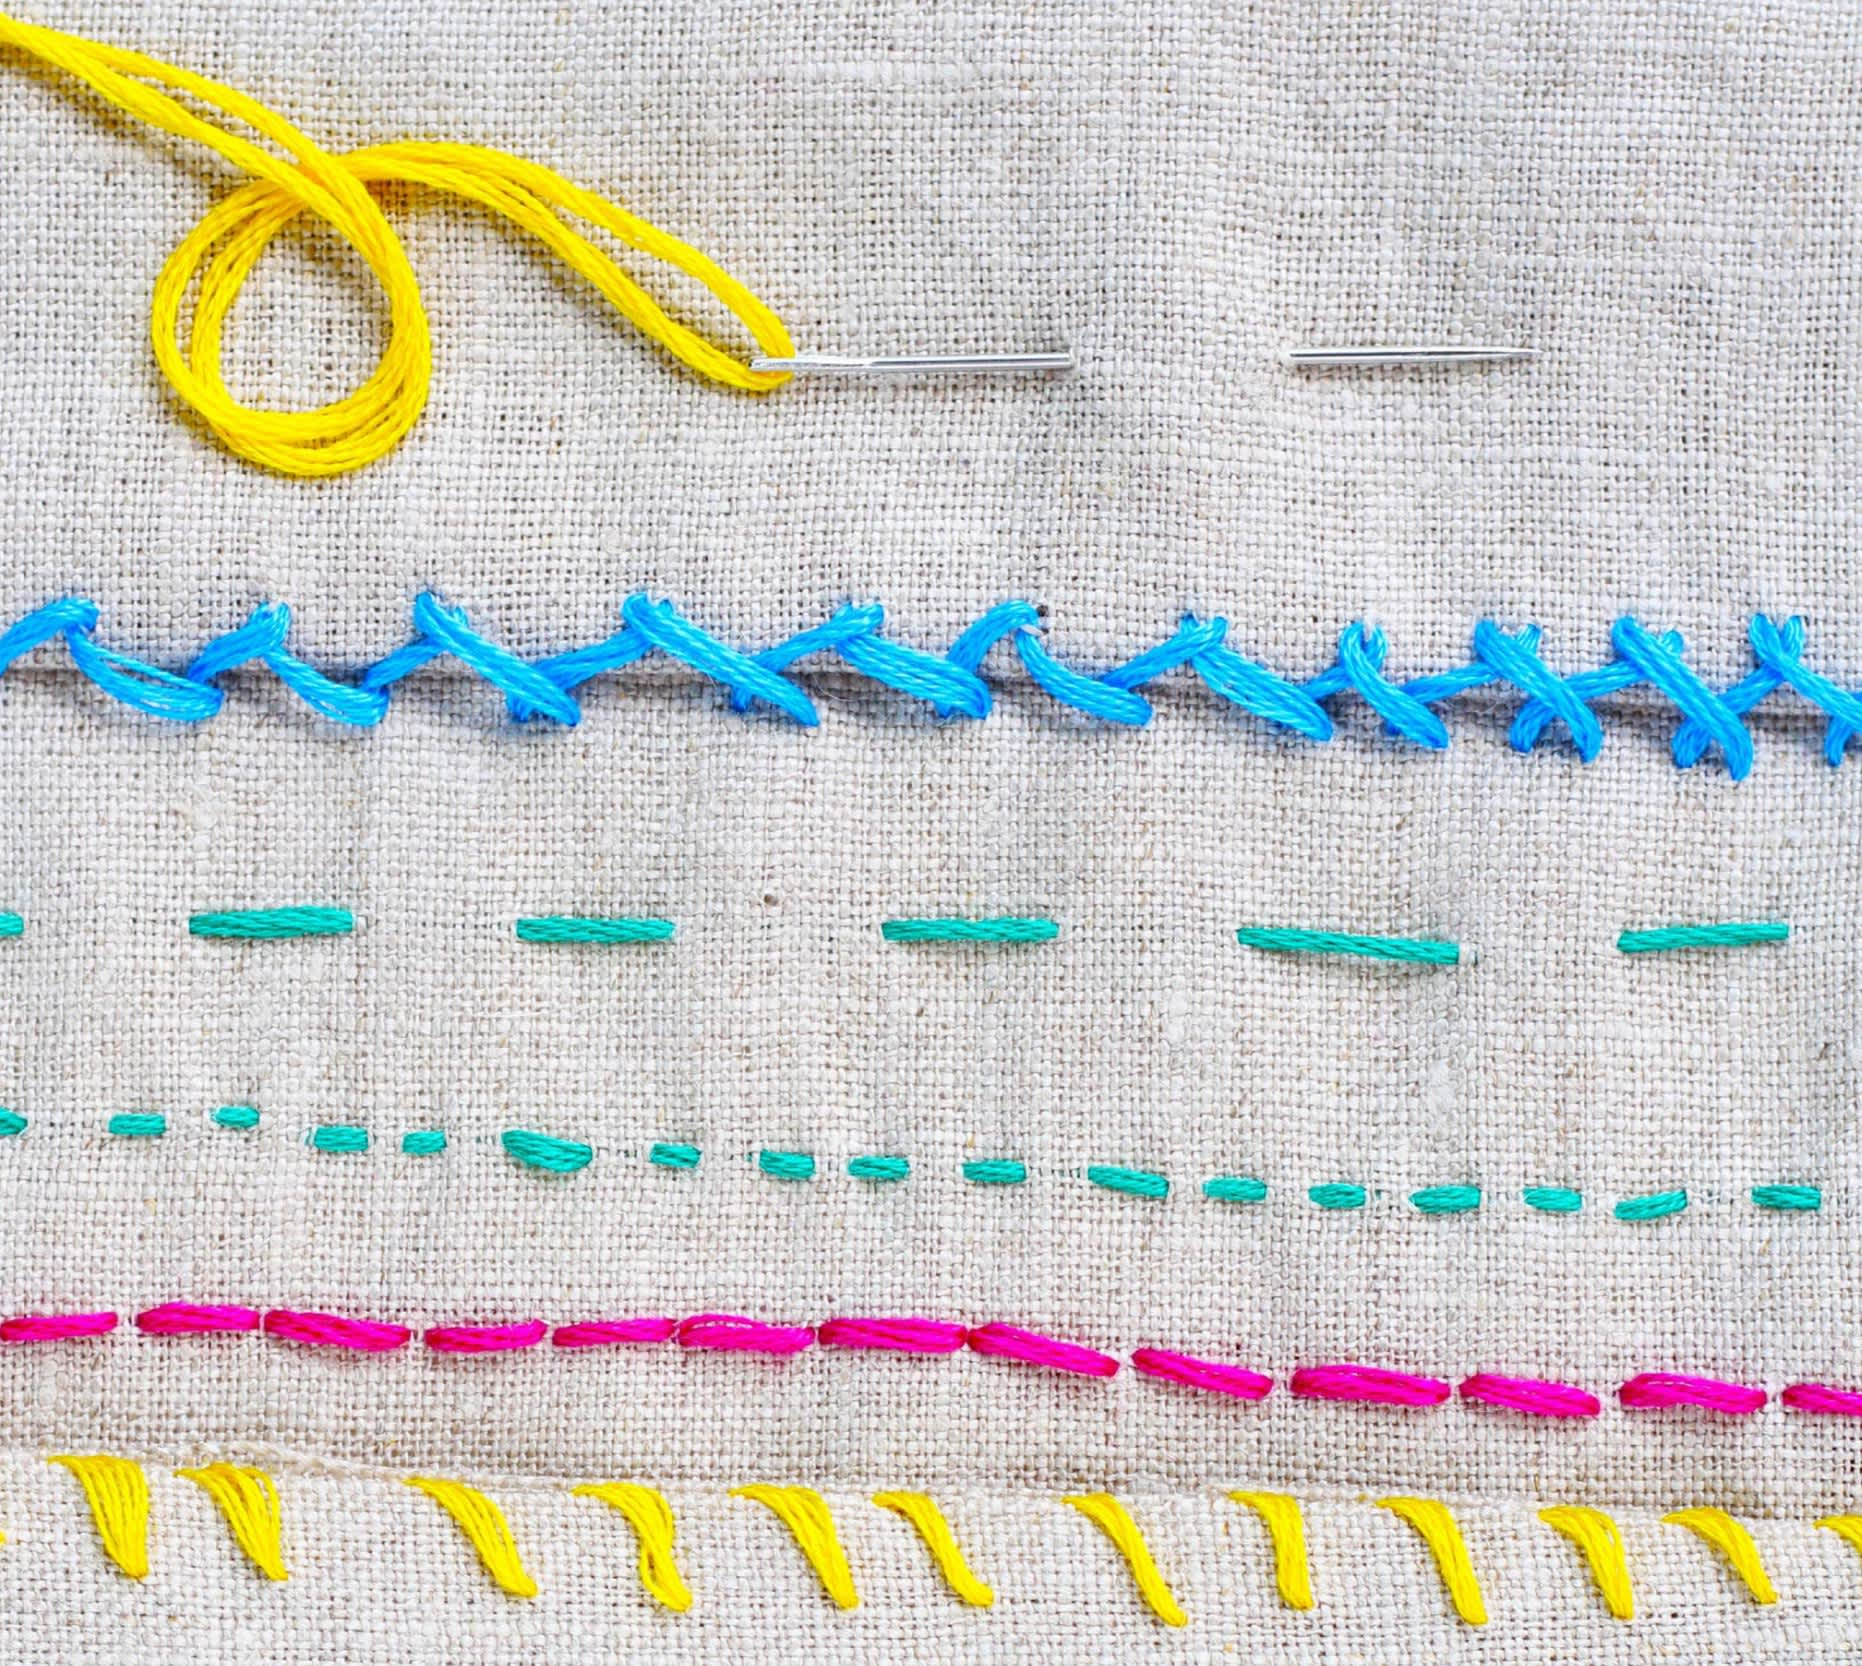 Cool How To Hand Sew 6 Basic Stitch Photo Tutorials Apartment Therapy Wiring 101 Omenaxxcnl